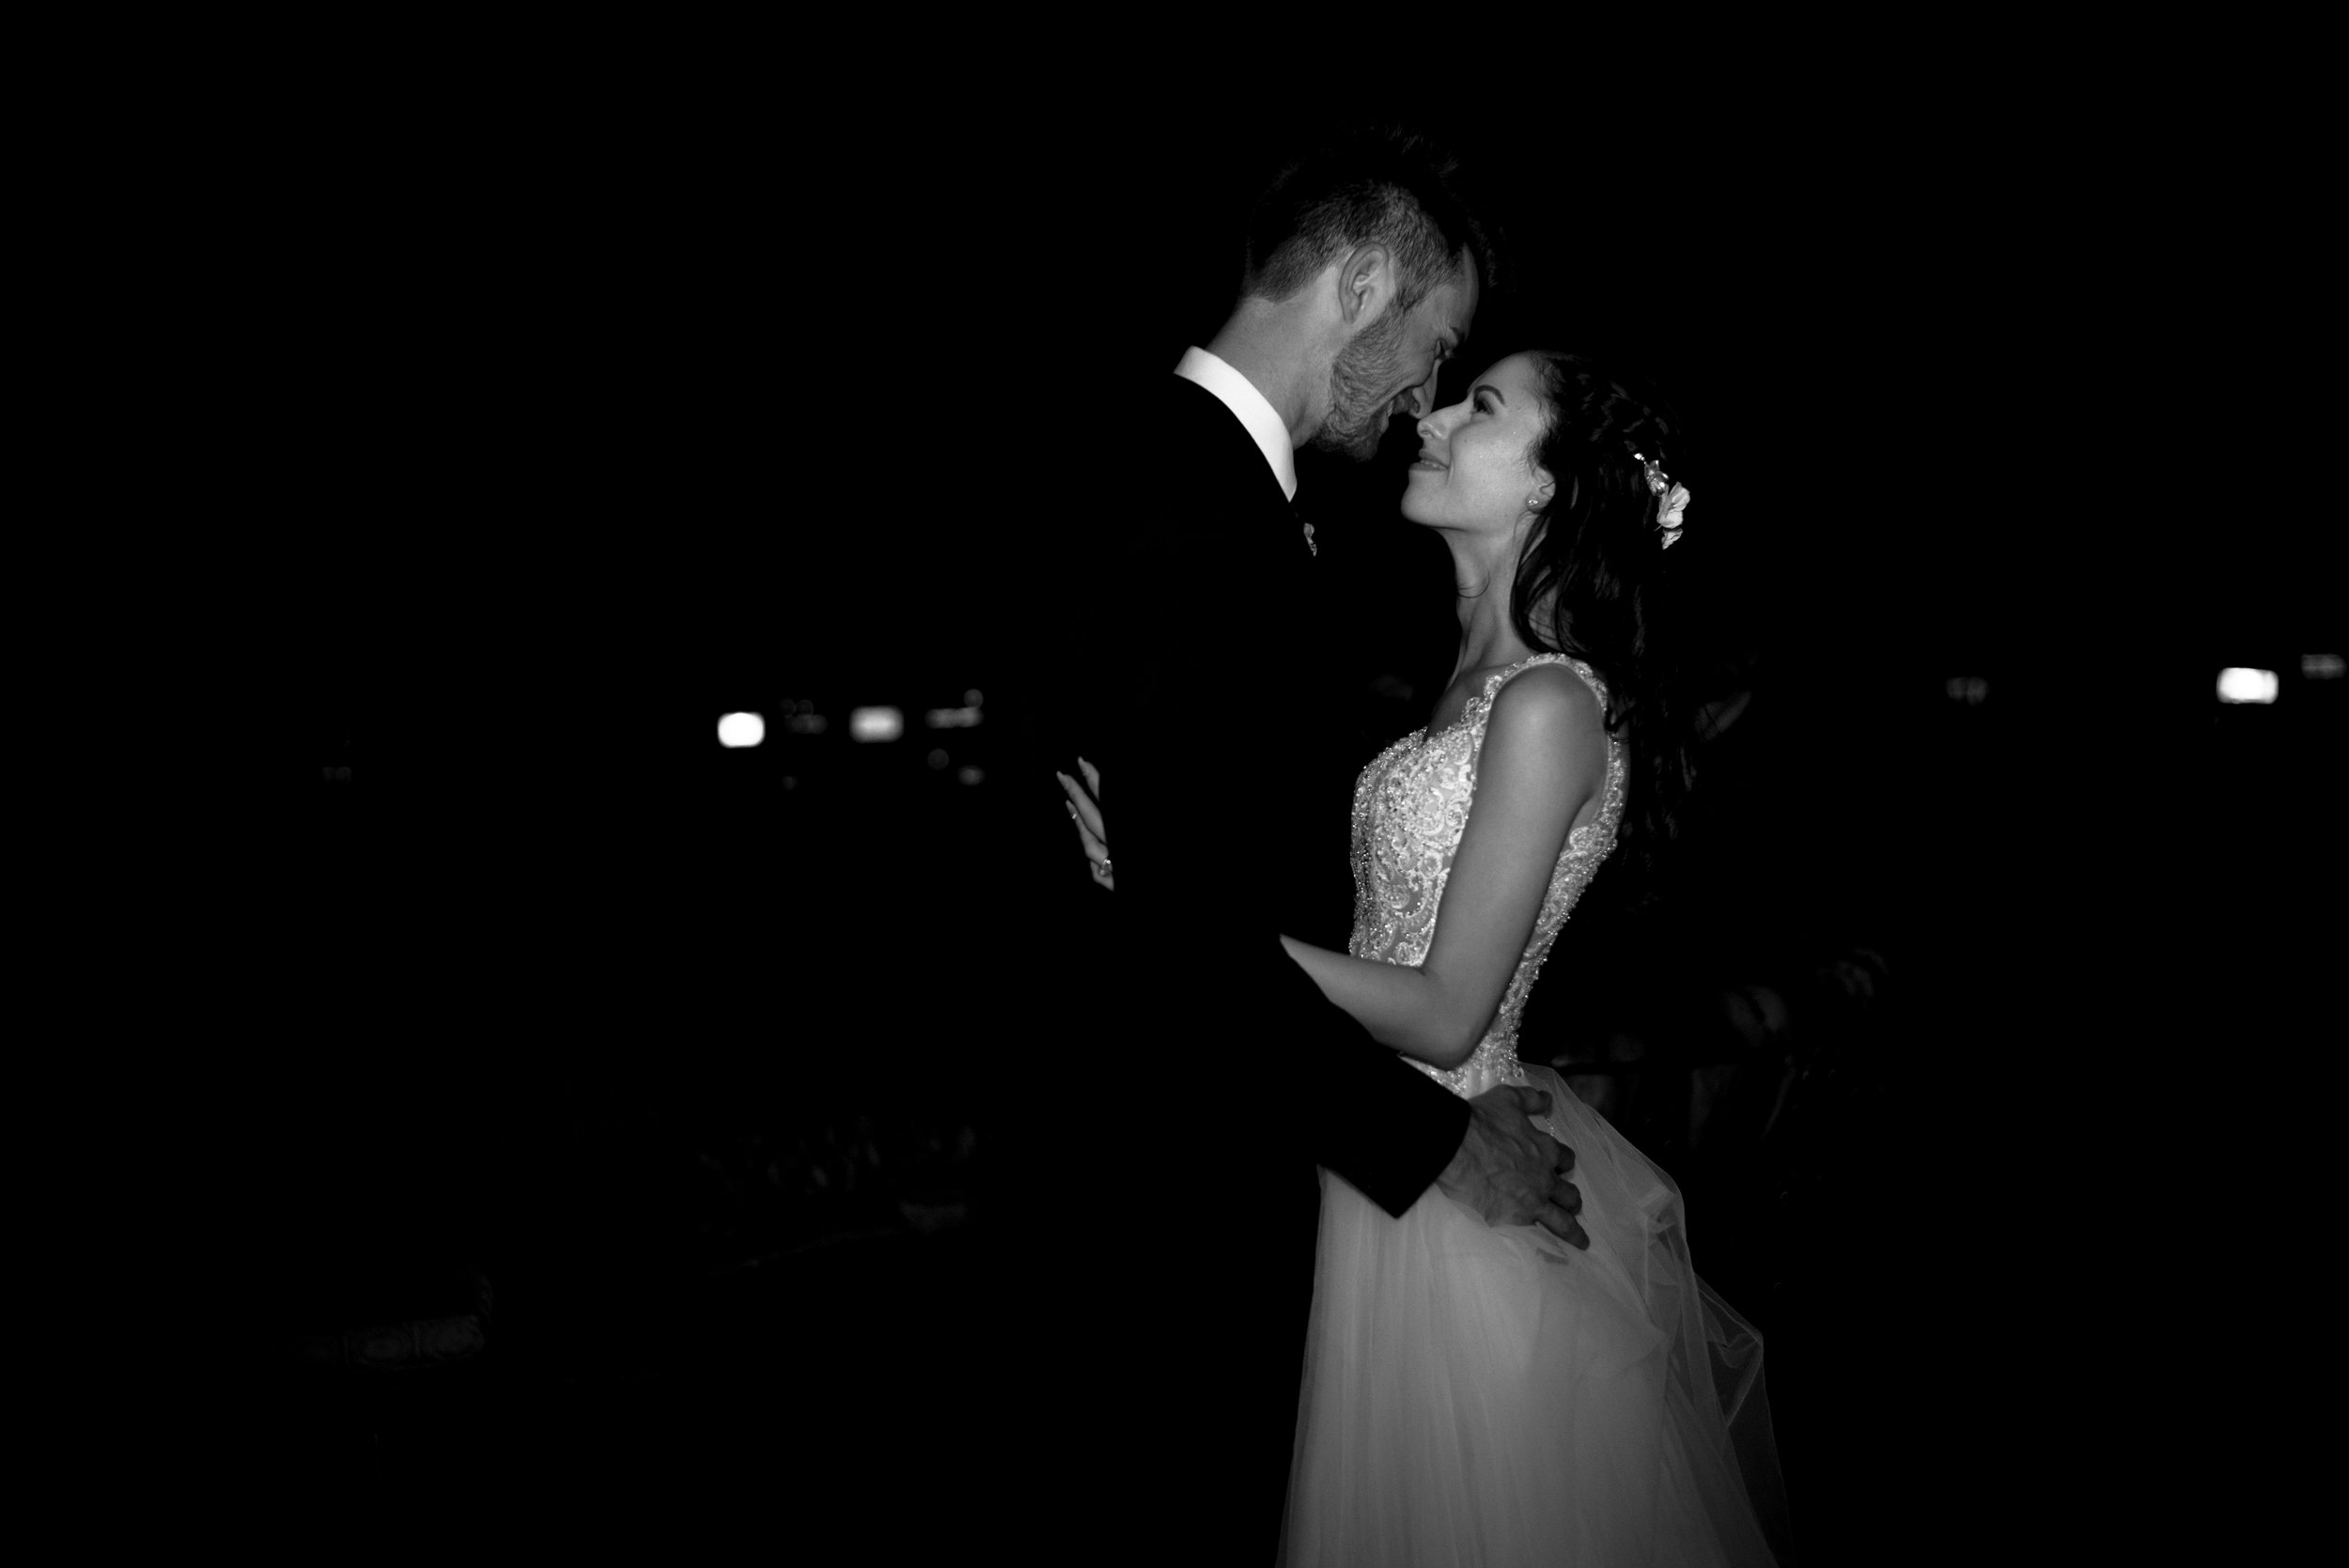 190518_Claudia&Braiden_Wedding_DSC_3768.jpg